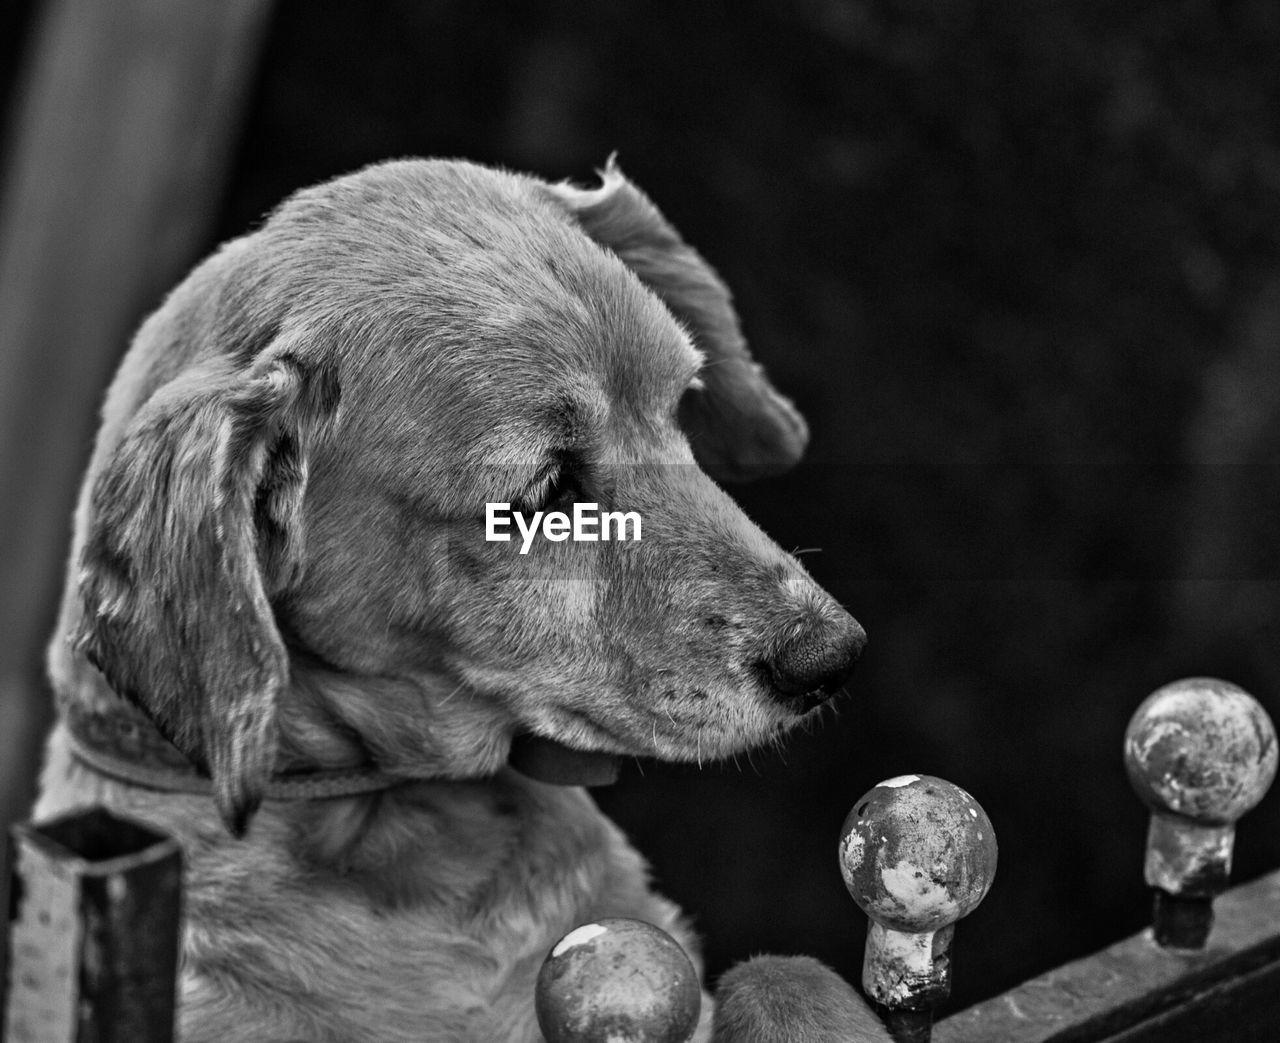 mammal, dog, canine, animal, one animal, domestic animals, animal themes, domestic, pets, focus on foreground, close-up, no people, vertebrate, looking, animal body part, day, animal head, looking away